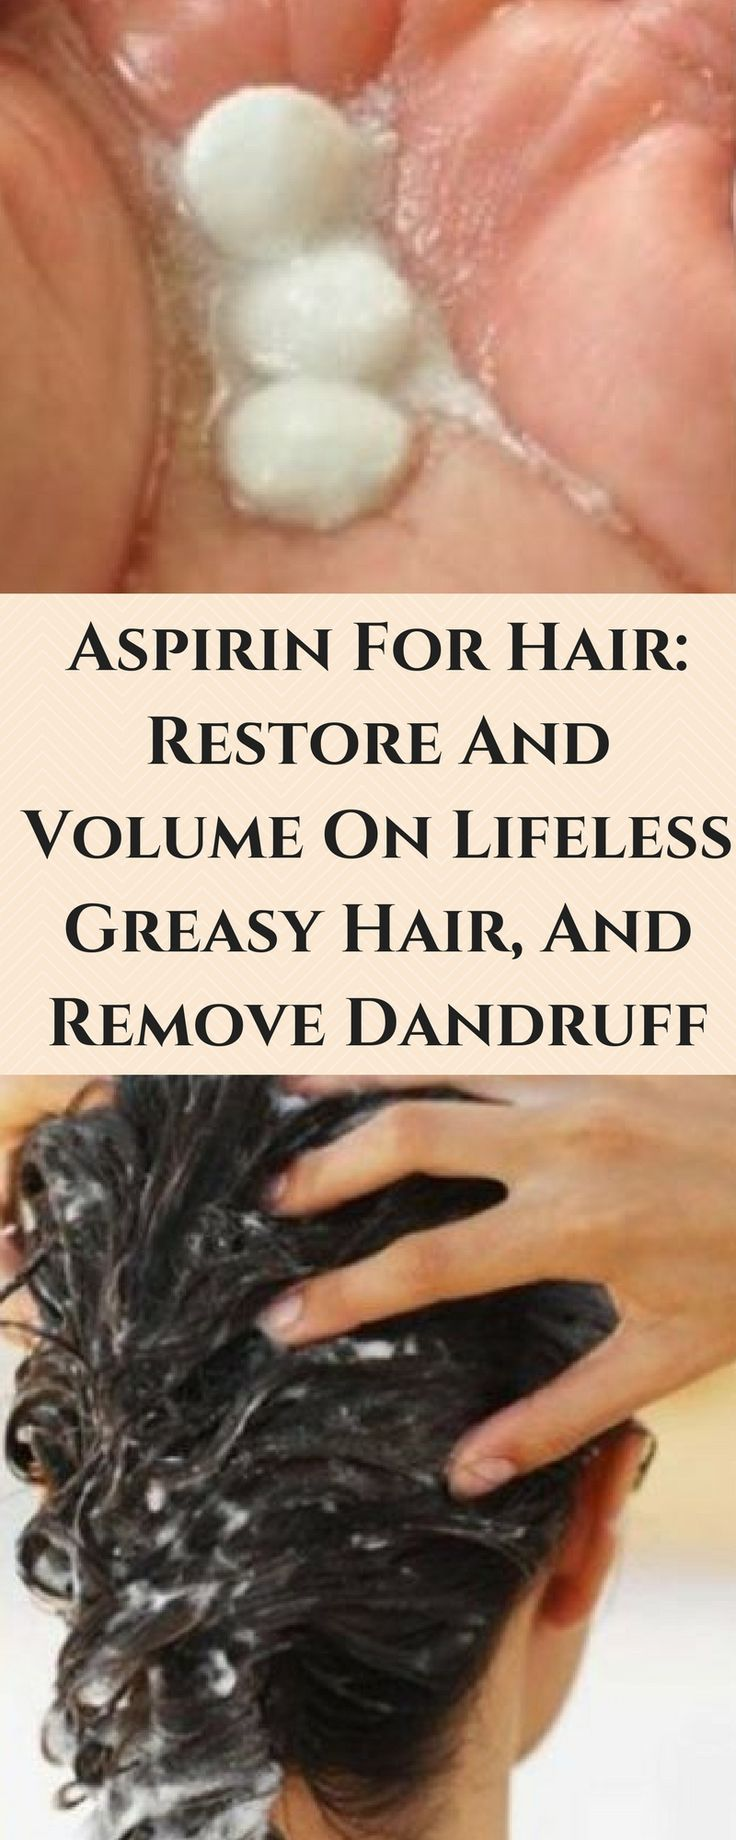 Aspirin For Hair: Restore And Volume On Lifeless Greasy Hair, And Remove Dandruff http://wp.me/p7S39D-ui